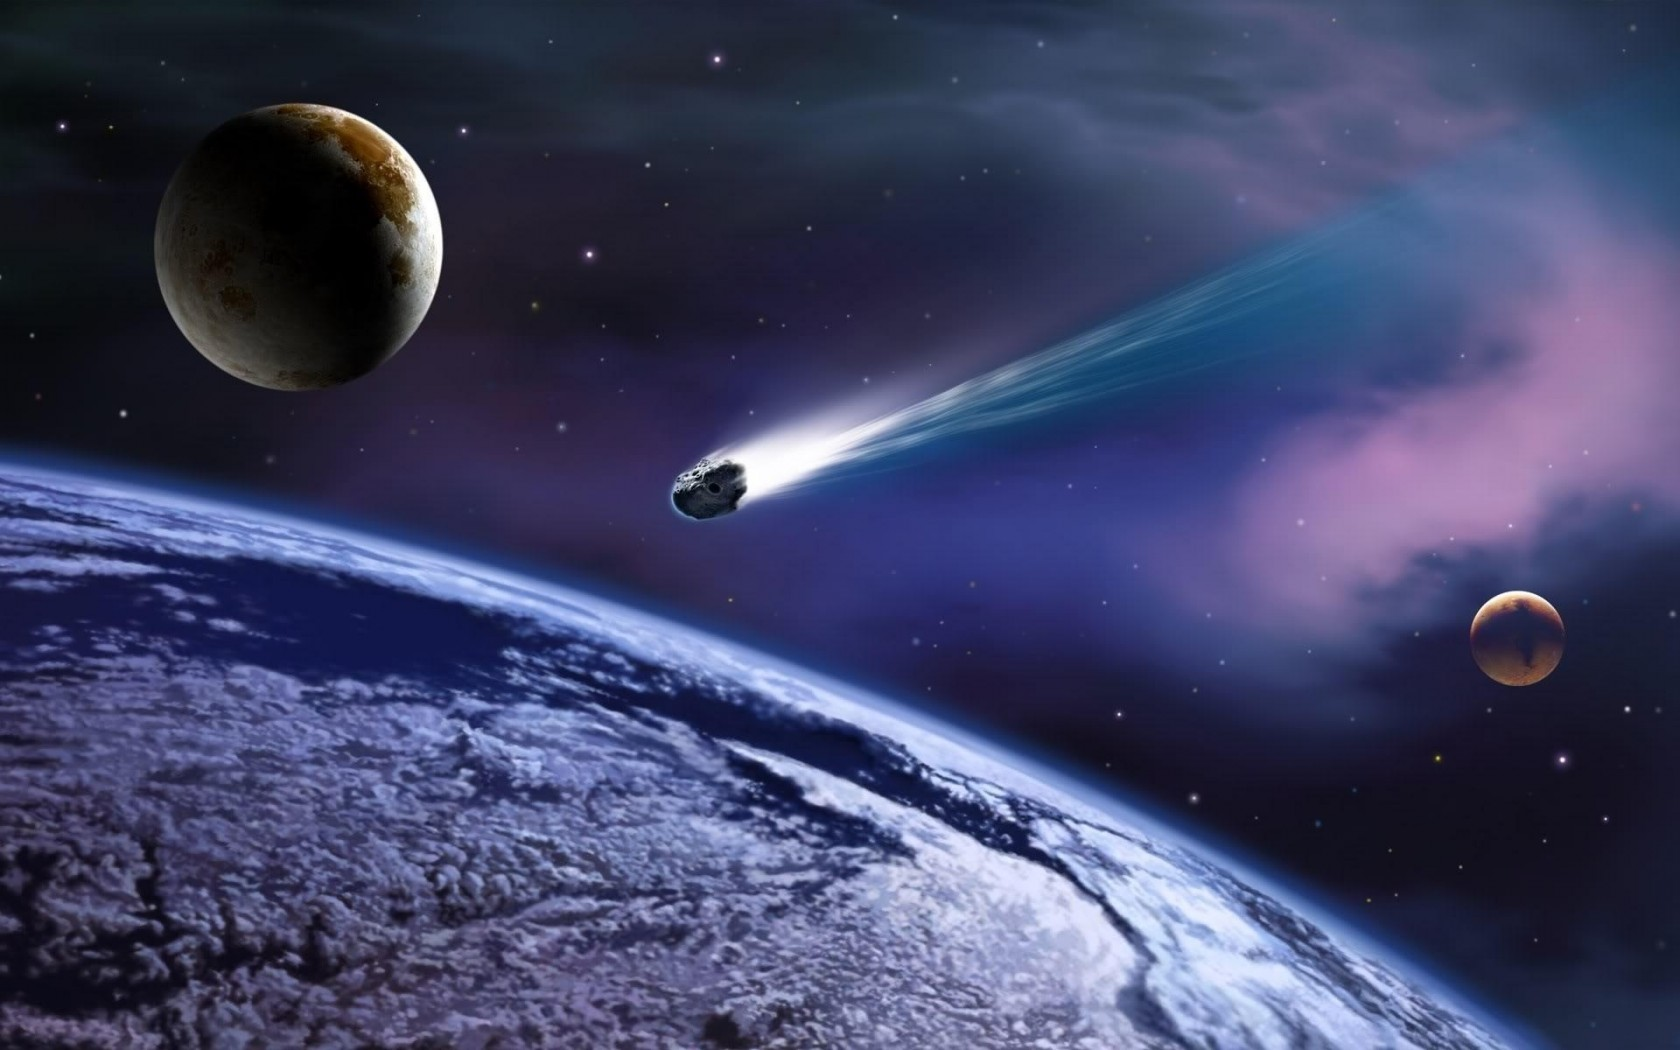 asteroid in space - photo #30